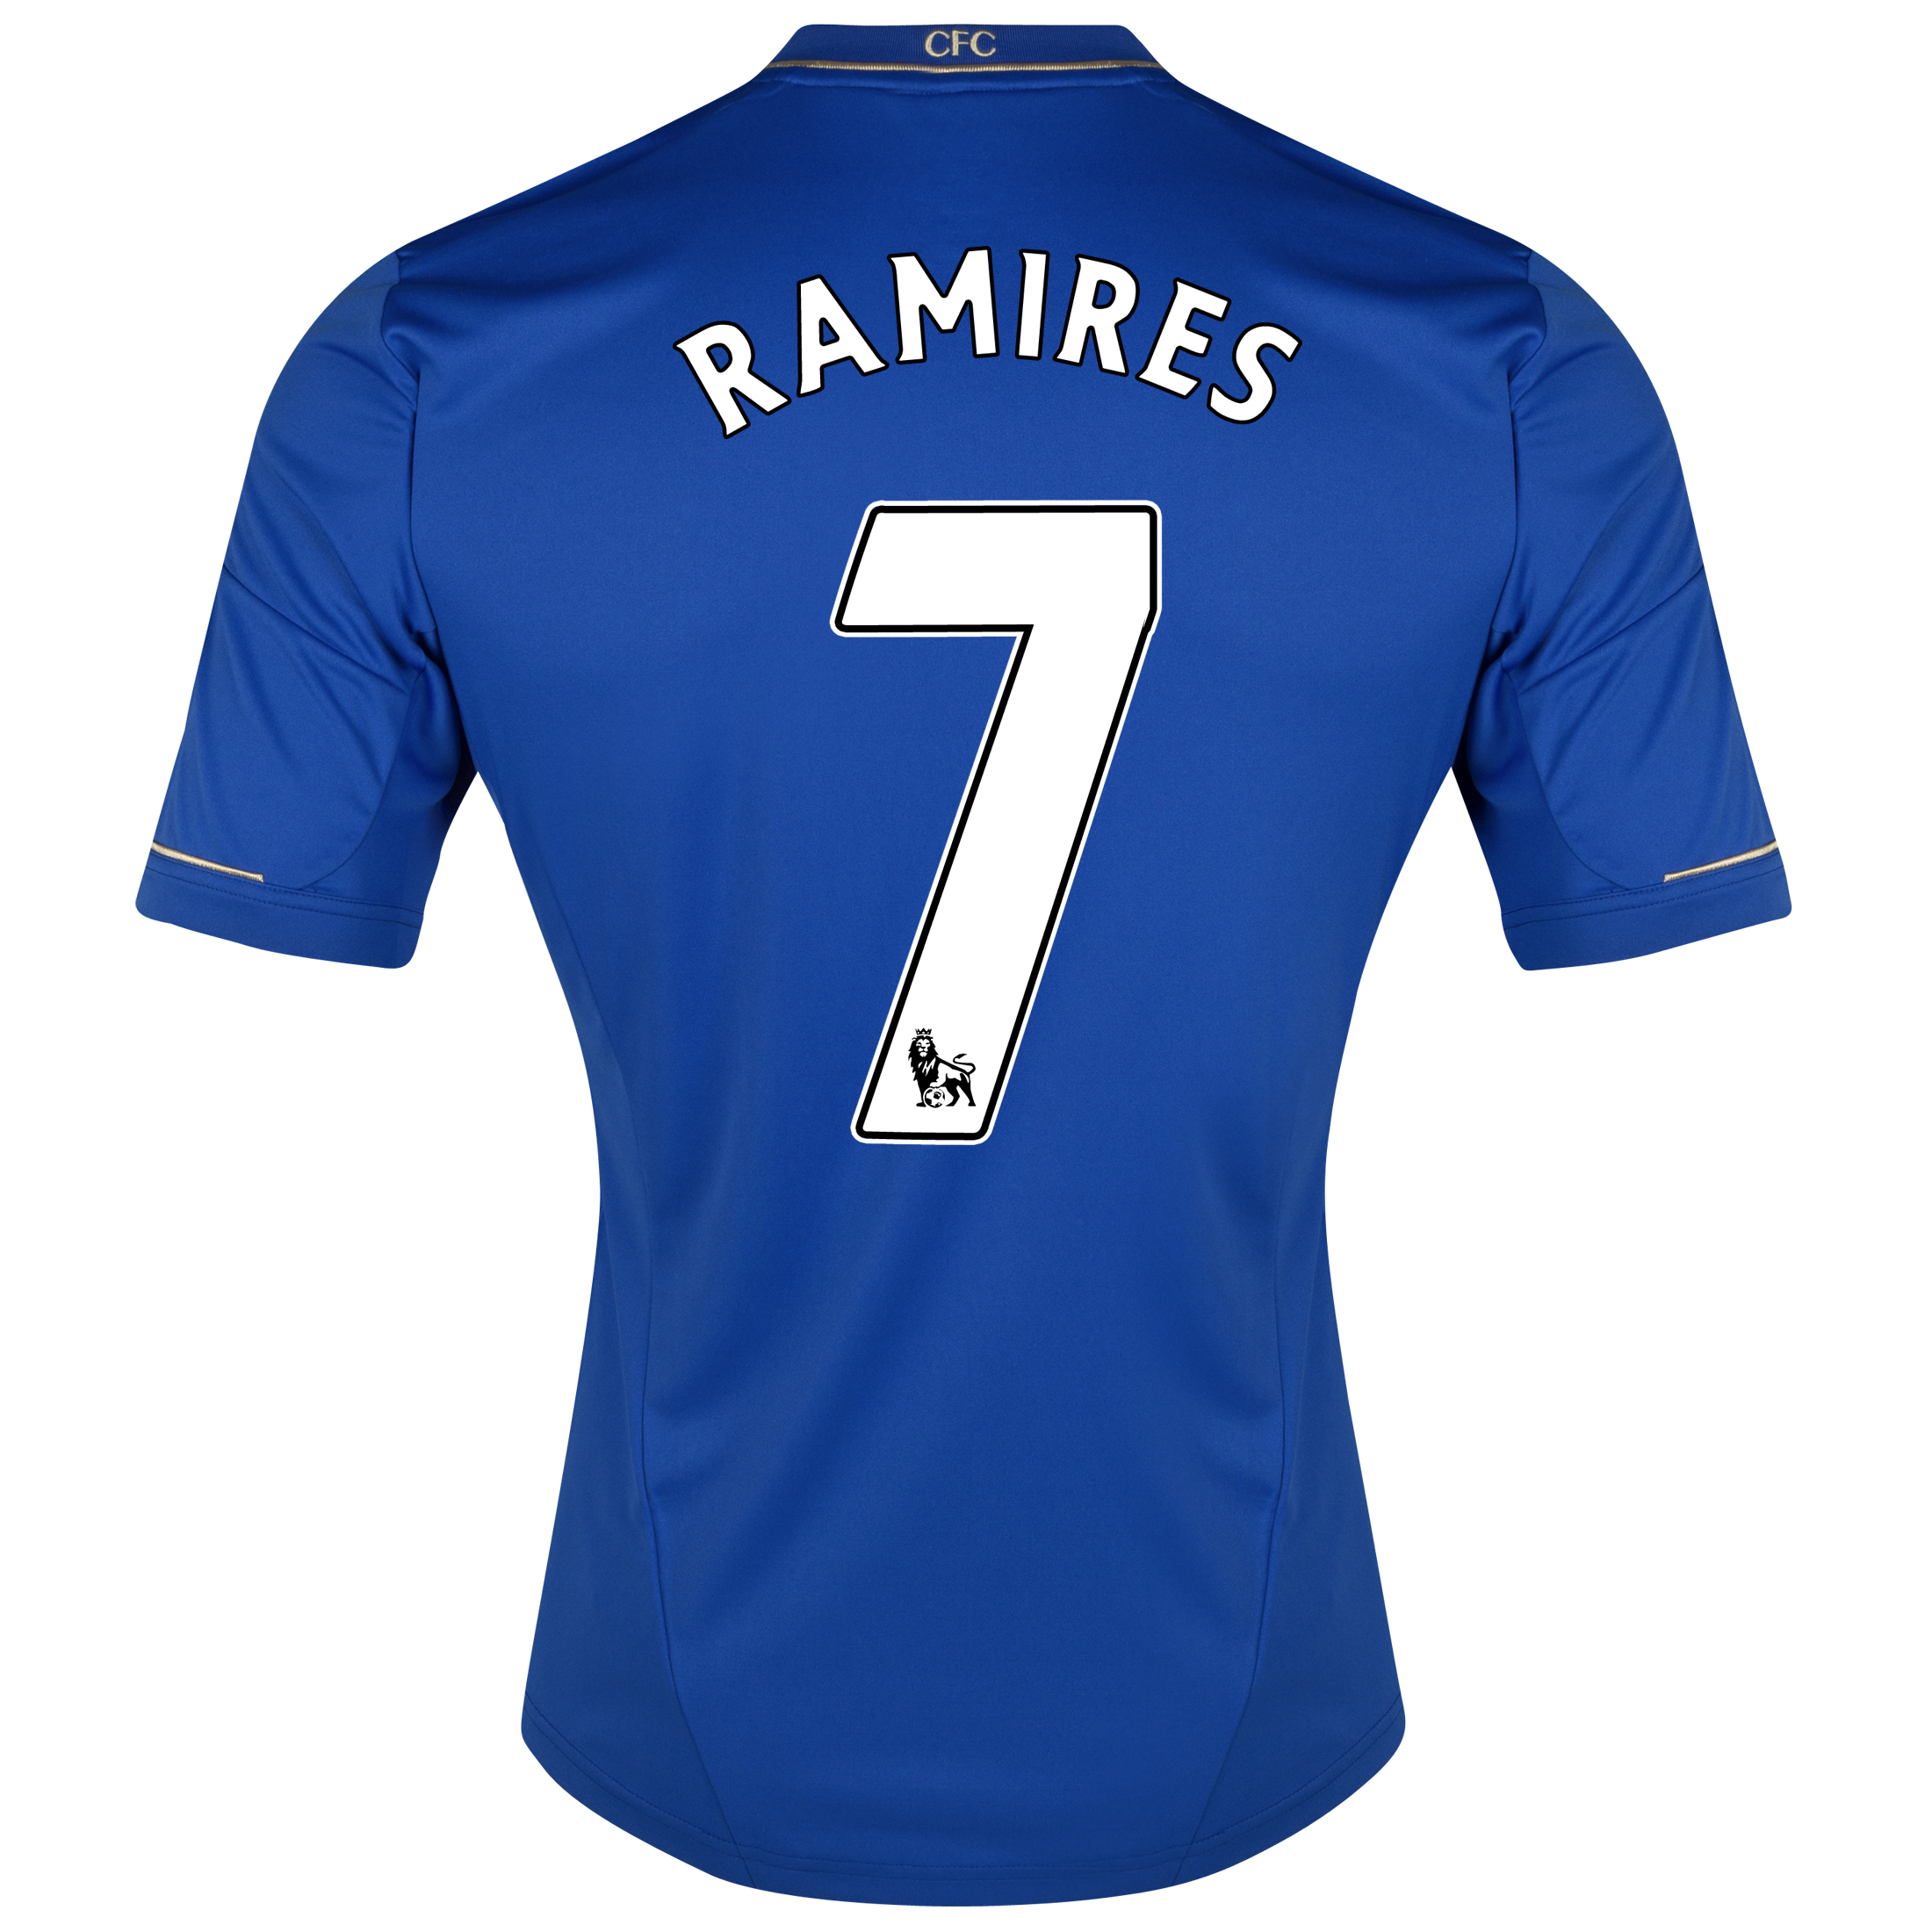 Chelsea Home Shirt 2012/13 - Youths with Ramires 7 printing